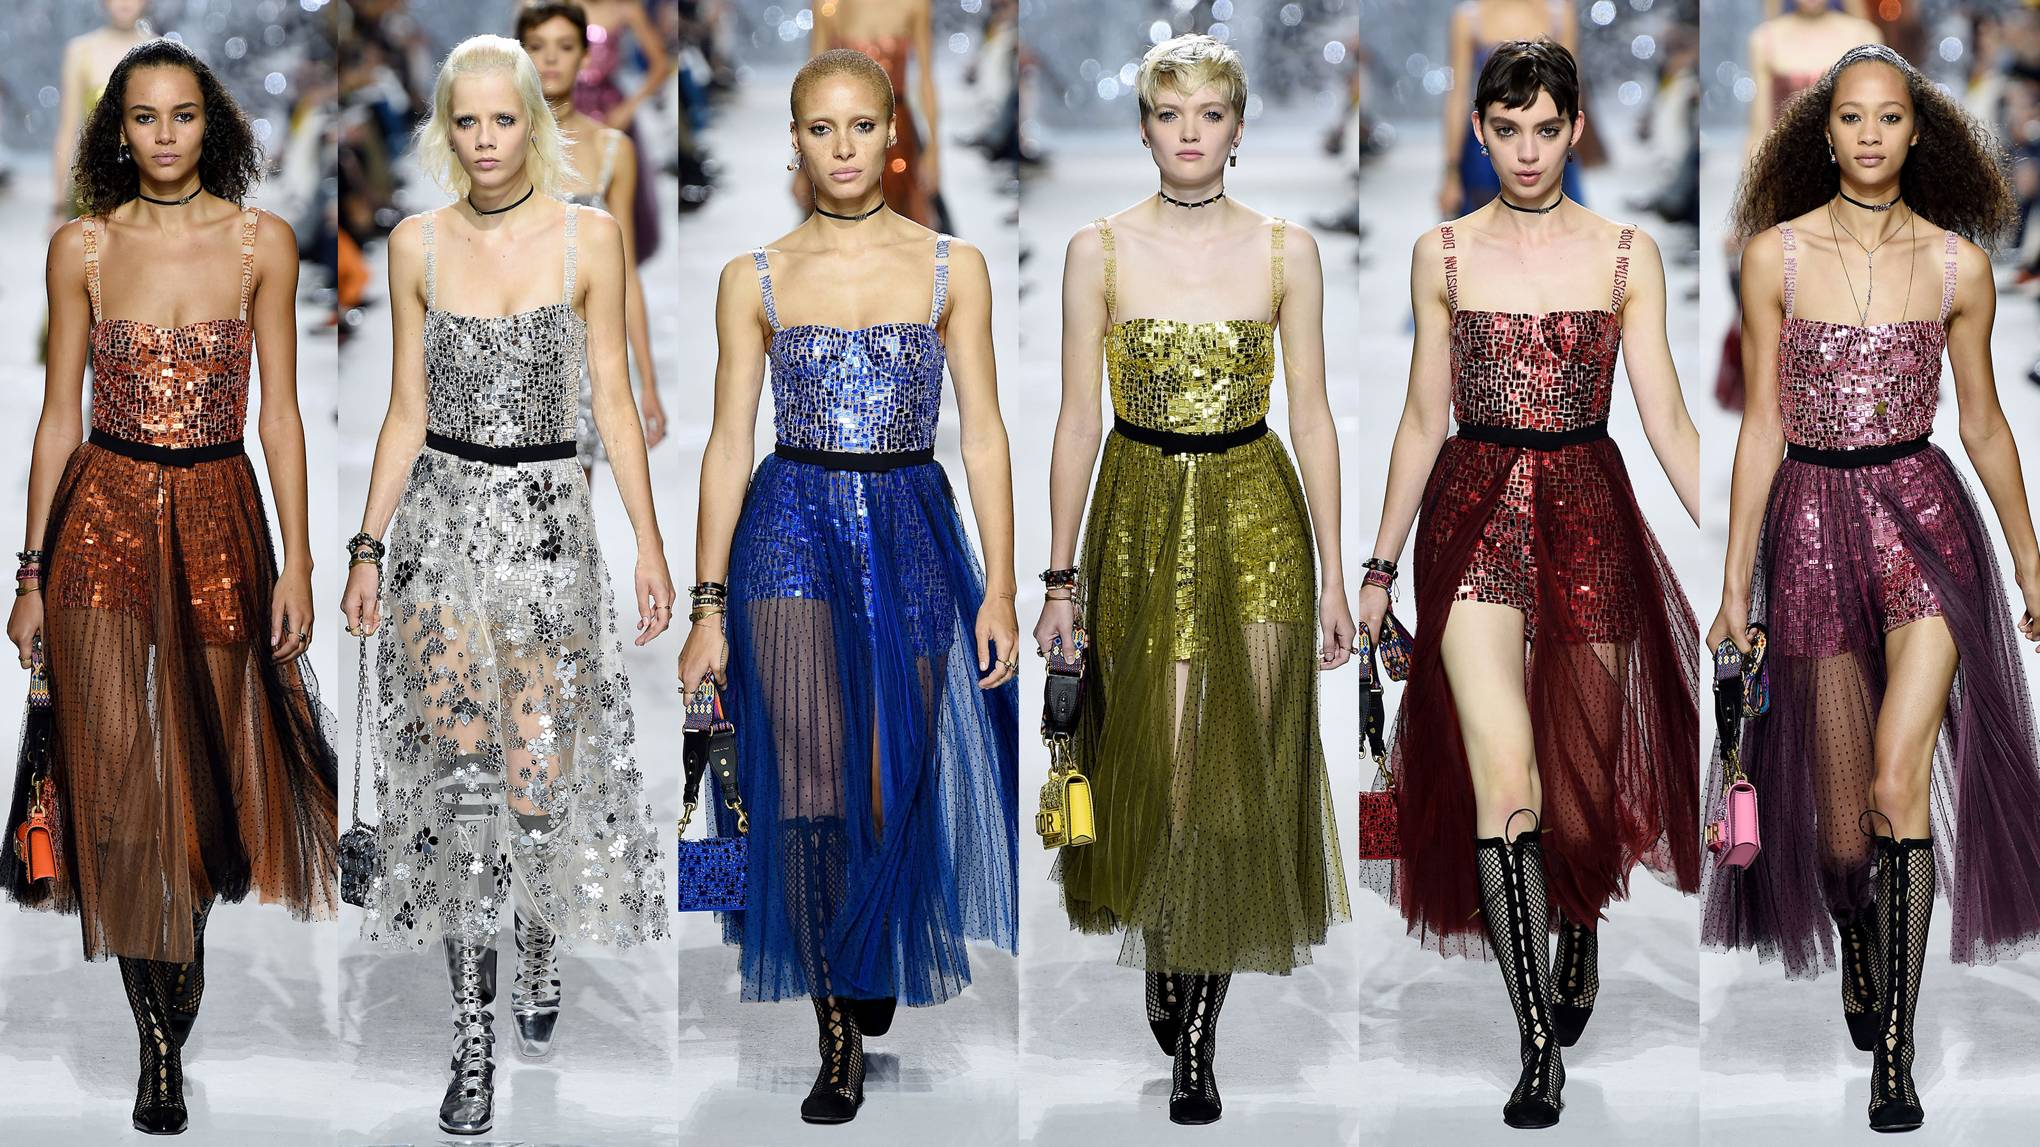 release date authentic quality sold worldwide Dior Mirrored Dresses Spring Summer 2018 Show | Glamour UK